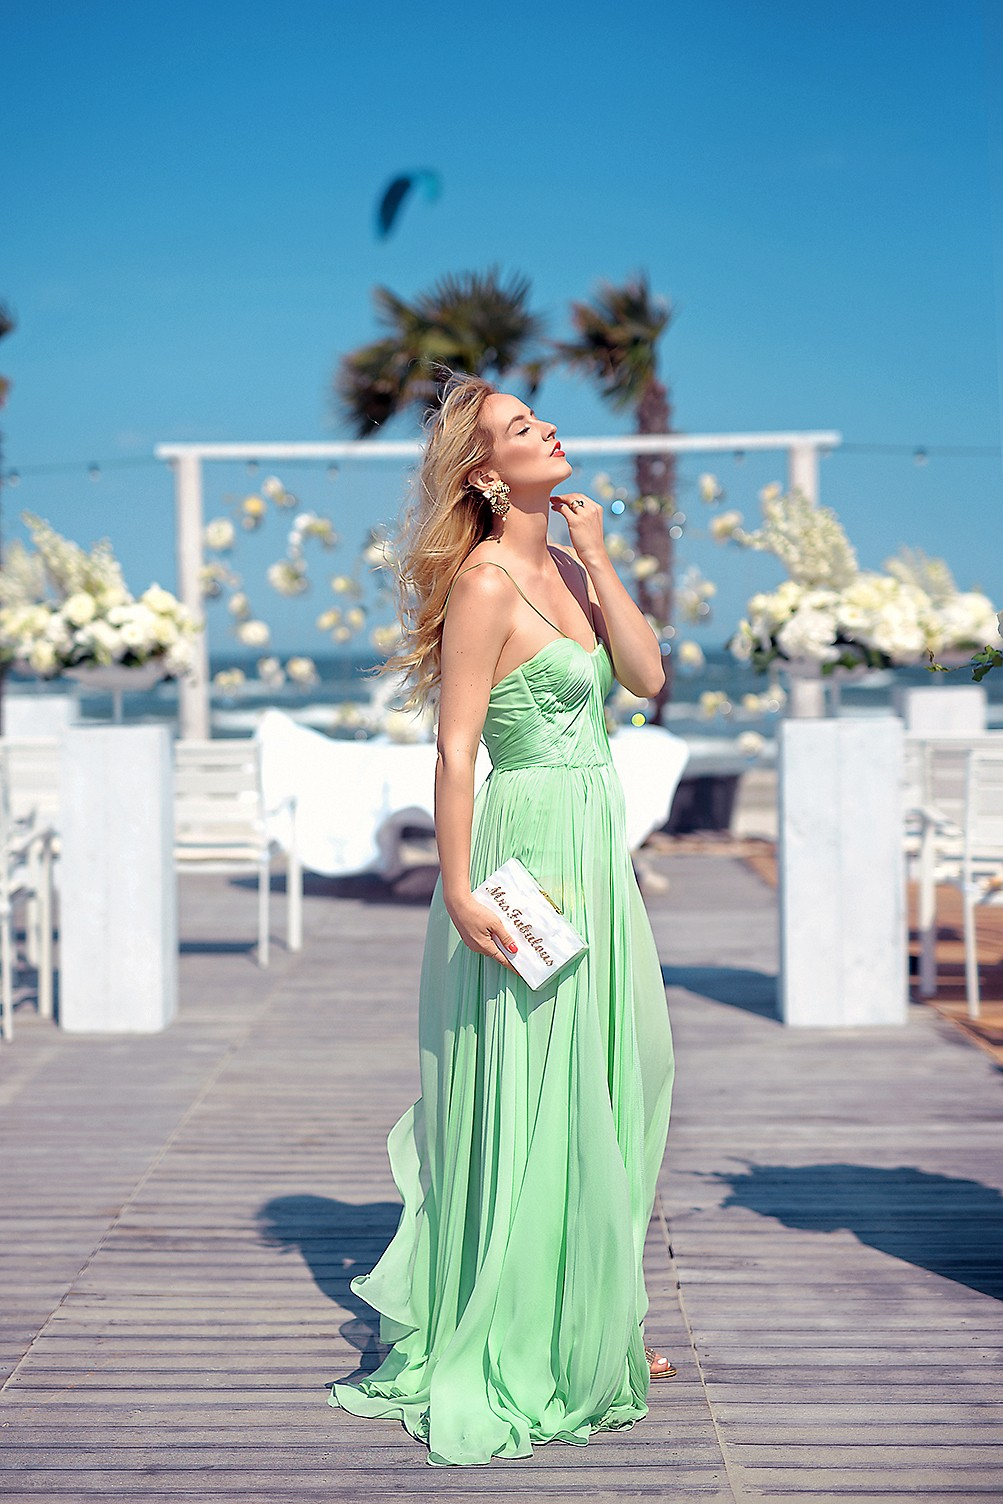 9fabulous_muses_loft_wedding_beach_wedding_dress_cocktail_dress_loft_mamaia copy